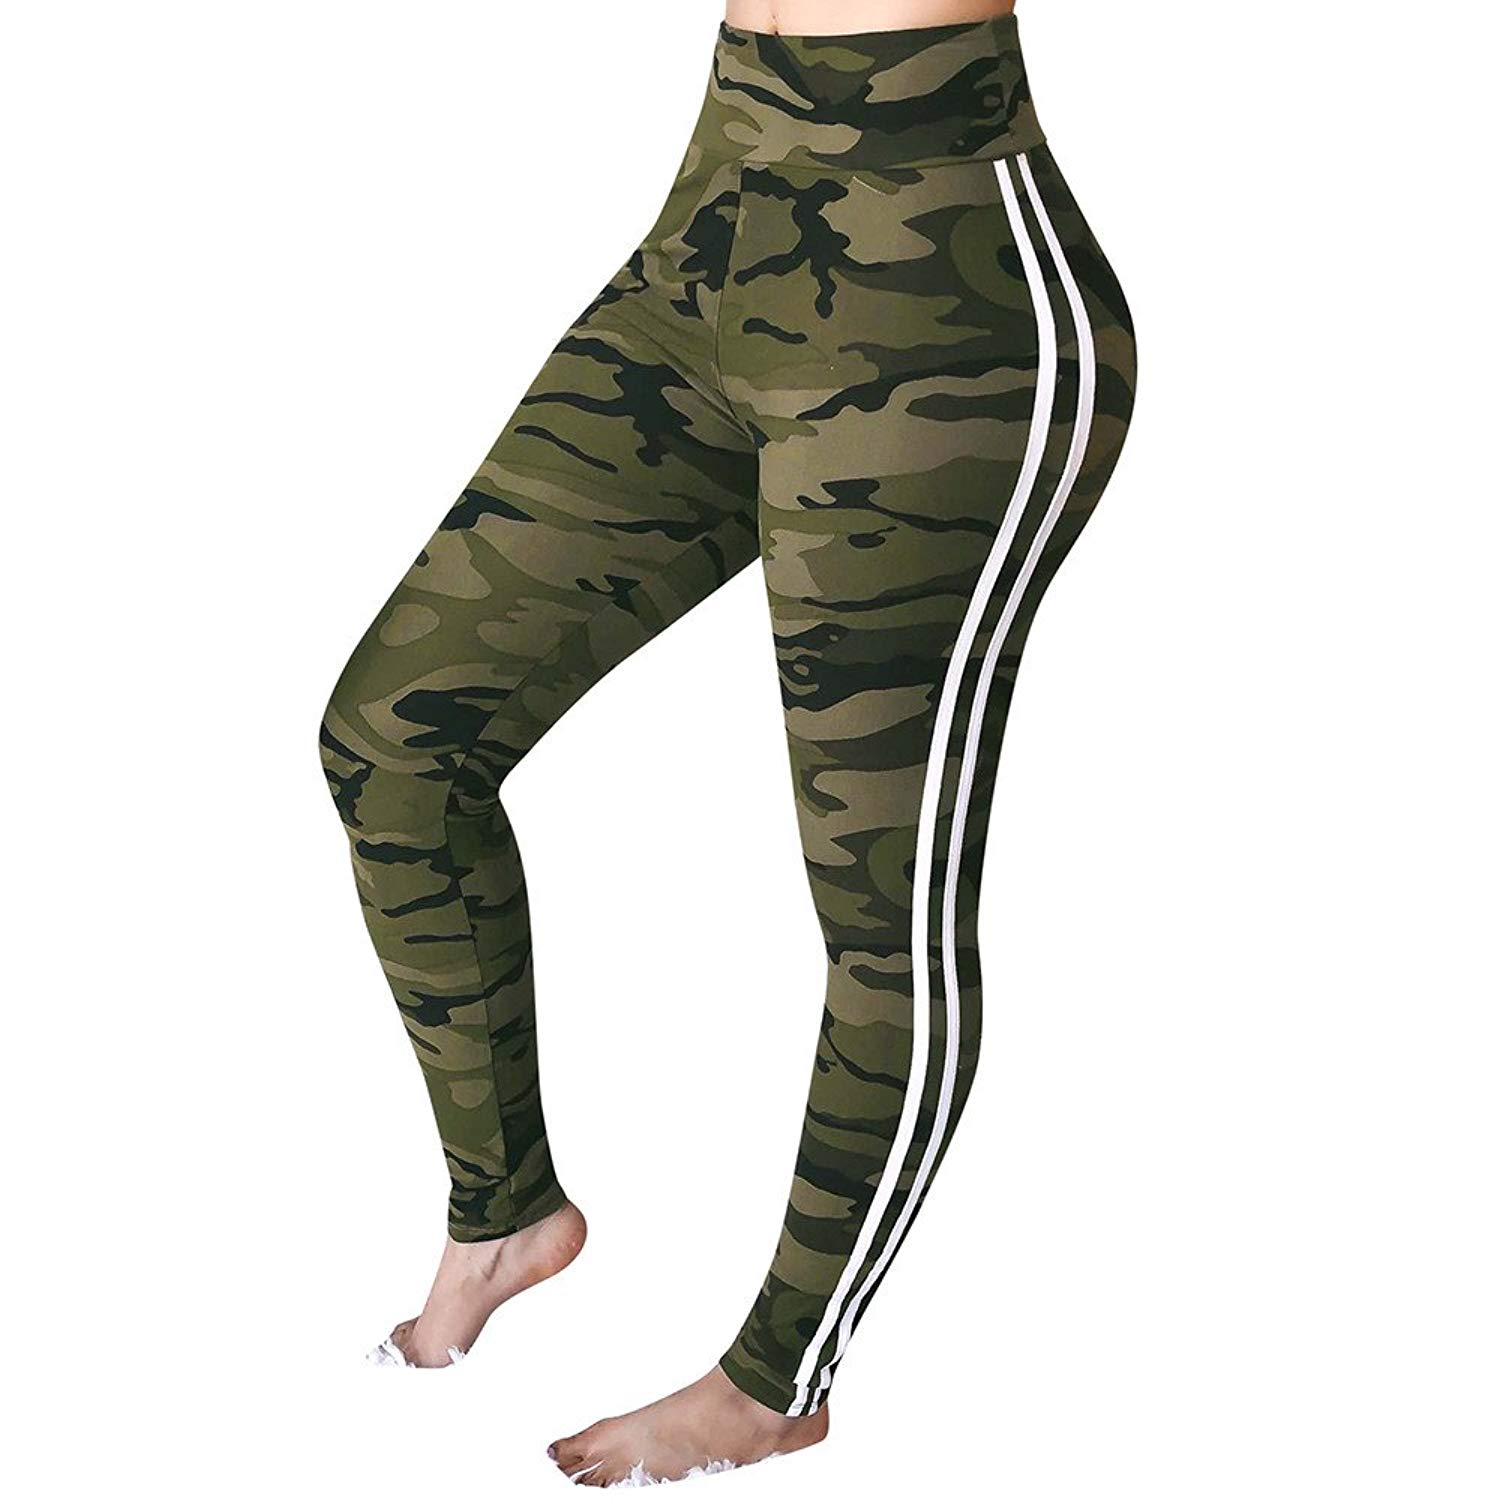 f7b043c9985c Get Quotations · FarJing Yoga Pants for Womens,Clearance Sale Womens Mid  Waist Camouflage Striped Trousers Ladies Casual